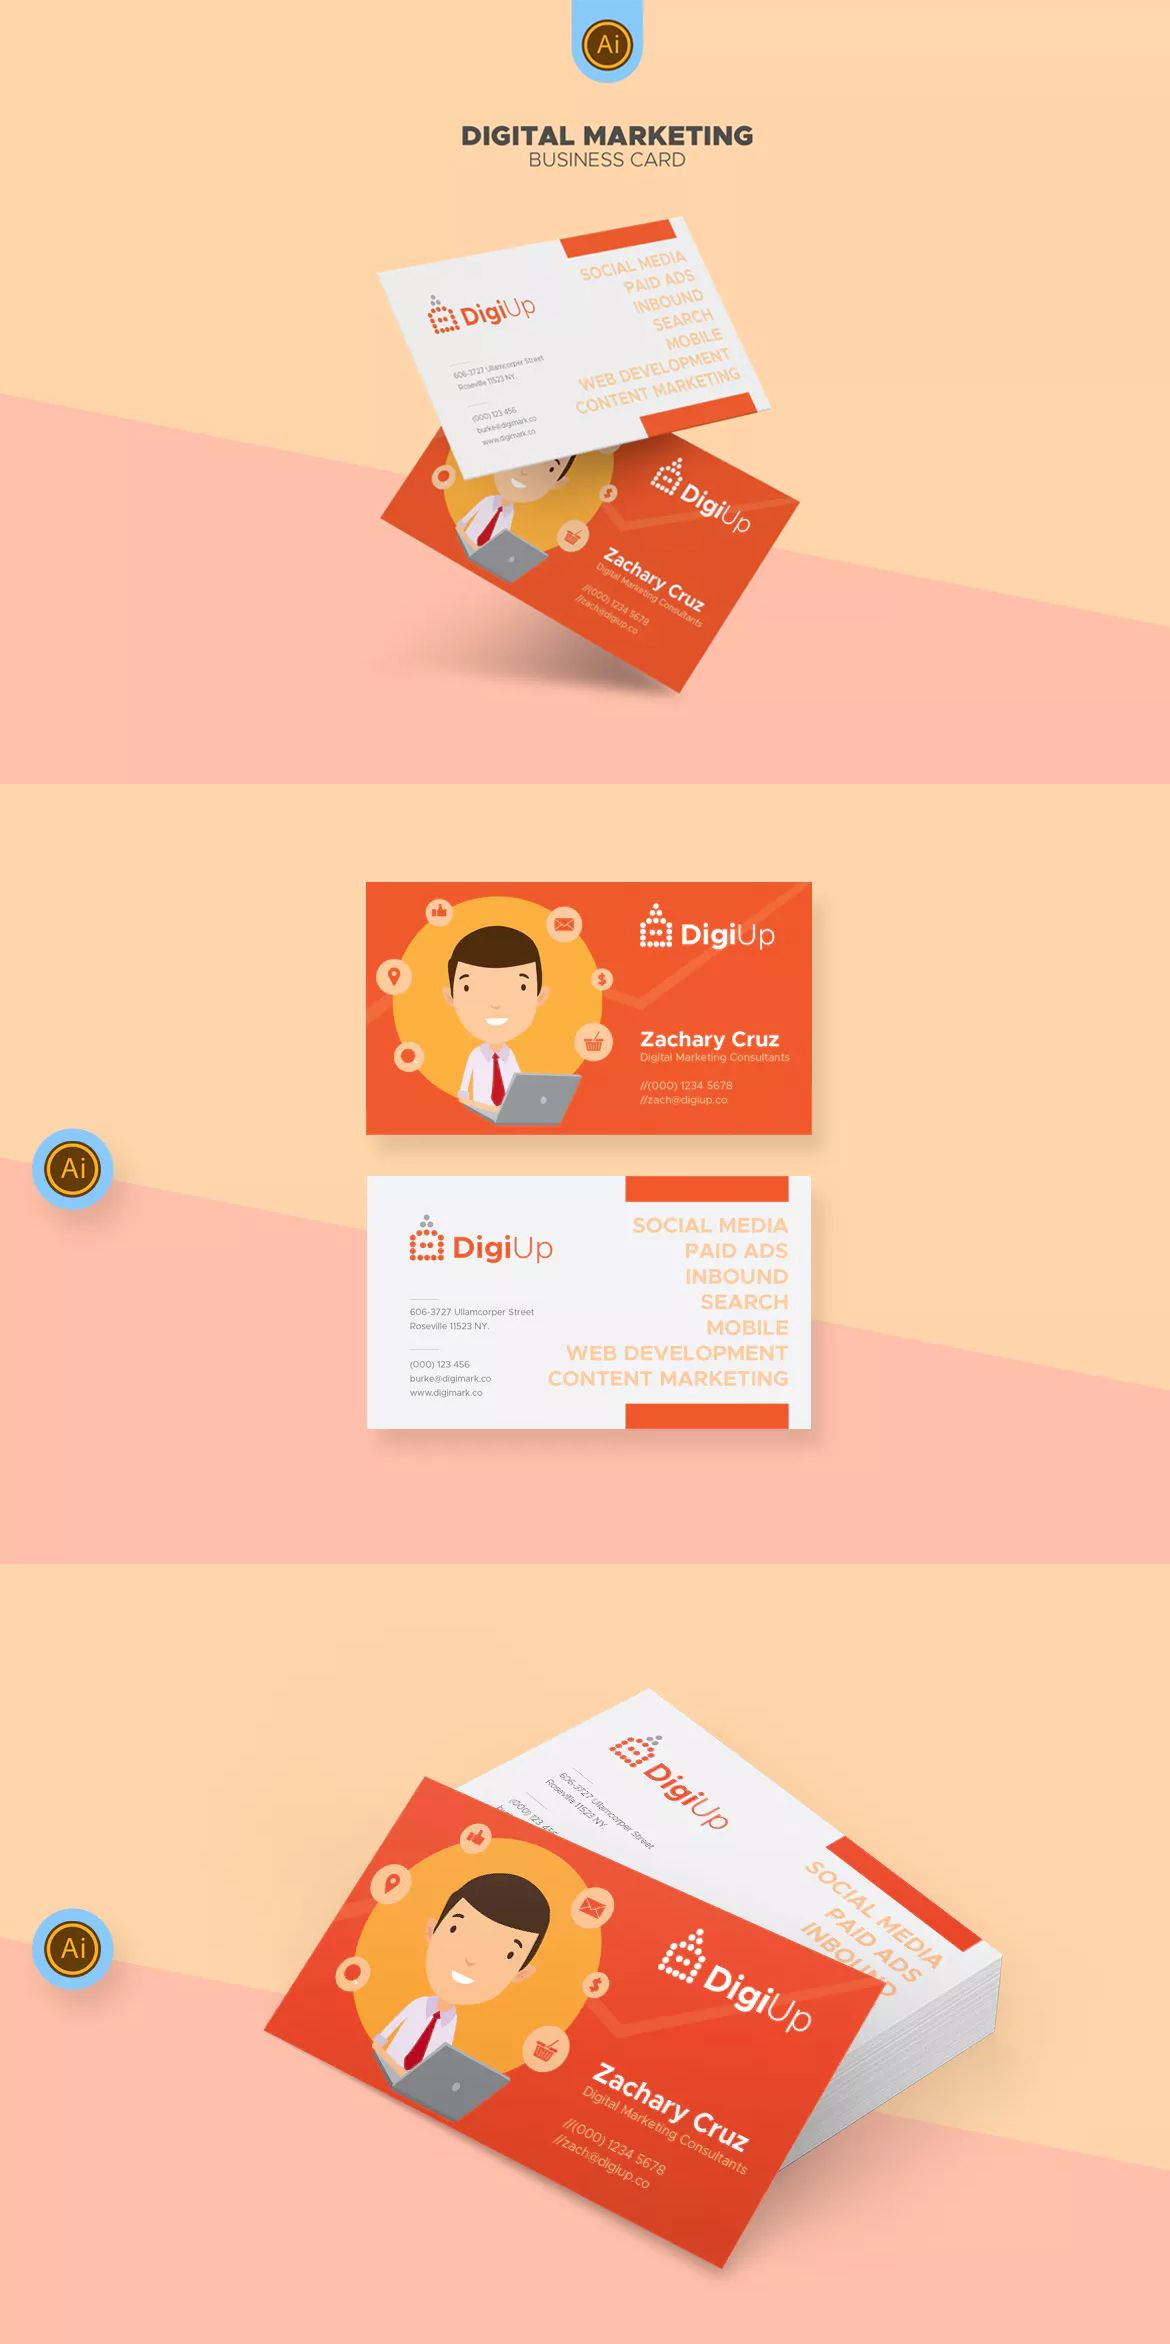 Digital marketing business card template ai business card digital marketing business card template ai cheaphphosting Image collections